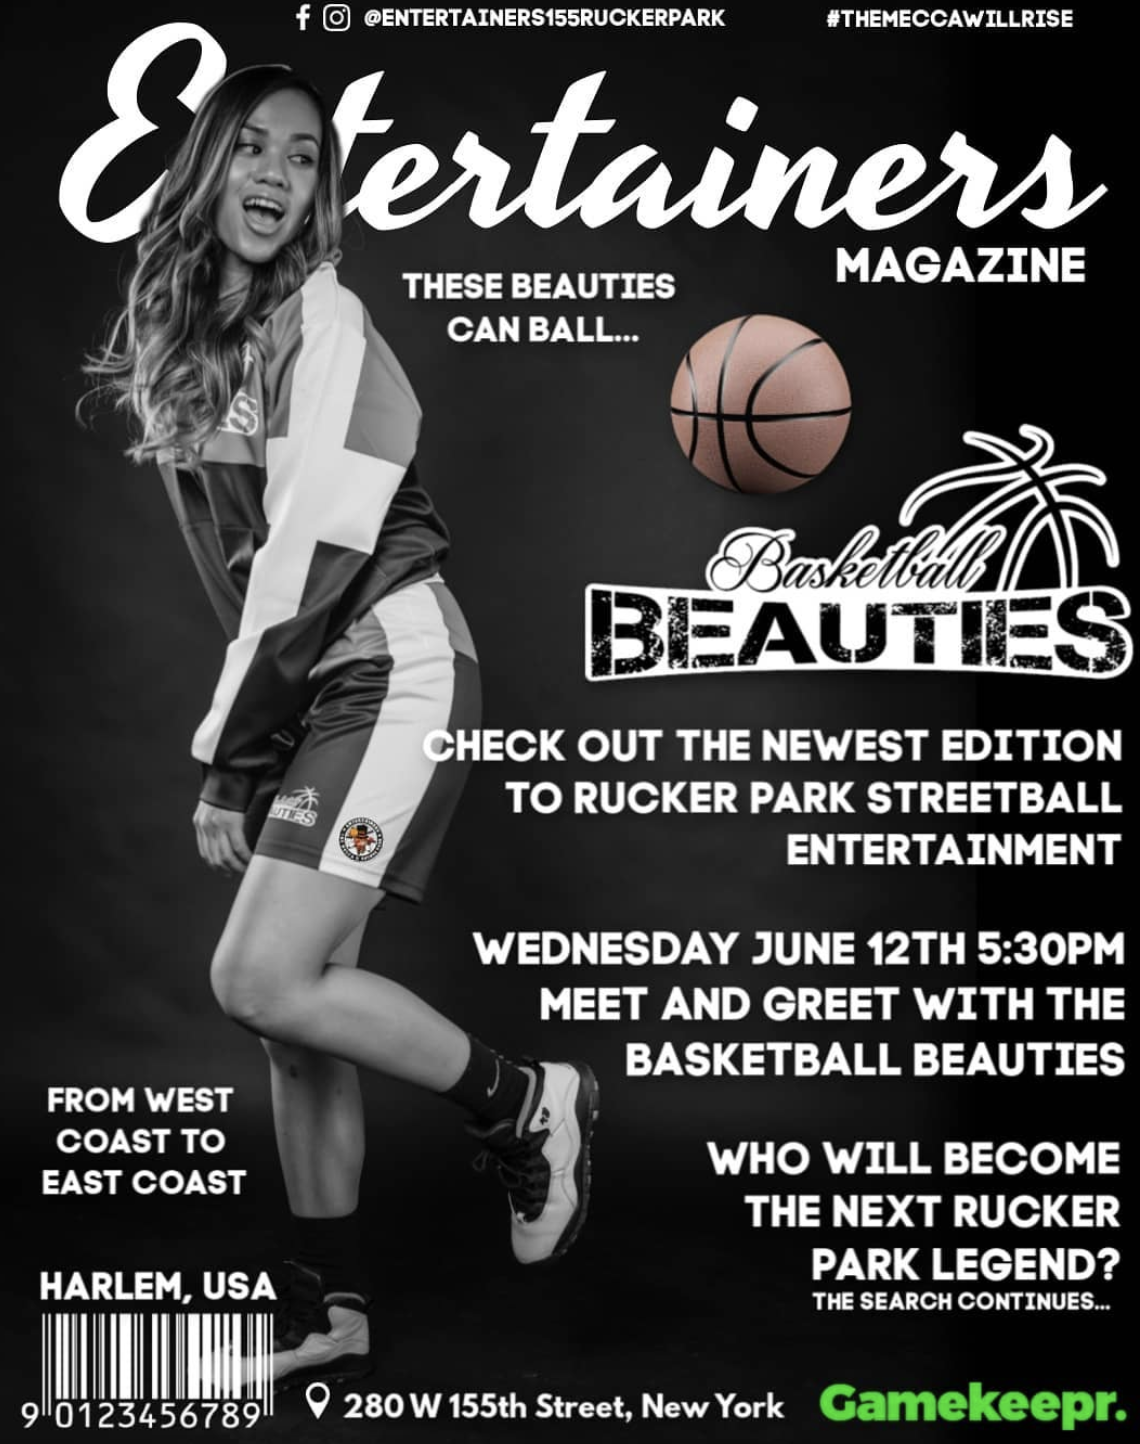 California Cover Girl: Kookie graced the front of Entertainers Magazine this past June in New York as the Entertainers Basketball League hosted the Basketball Beauties League for their annual meet and greet to kick-off the season playing at Rucker Park.